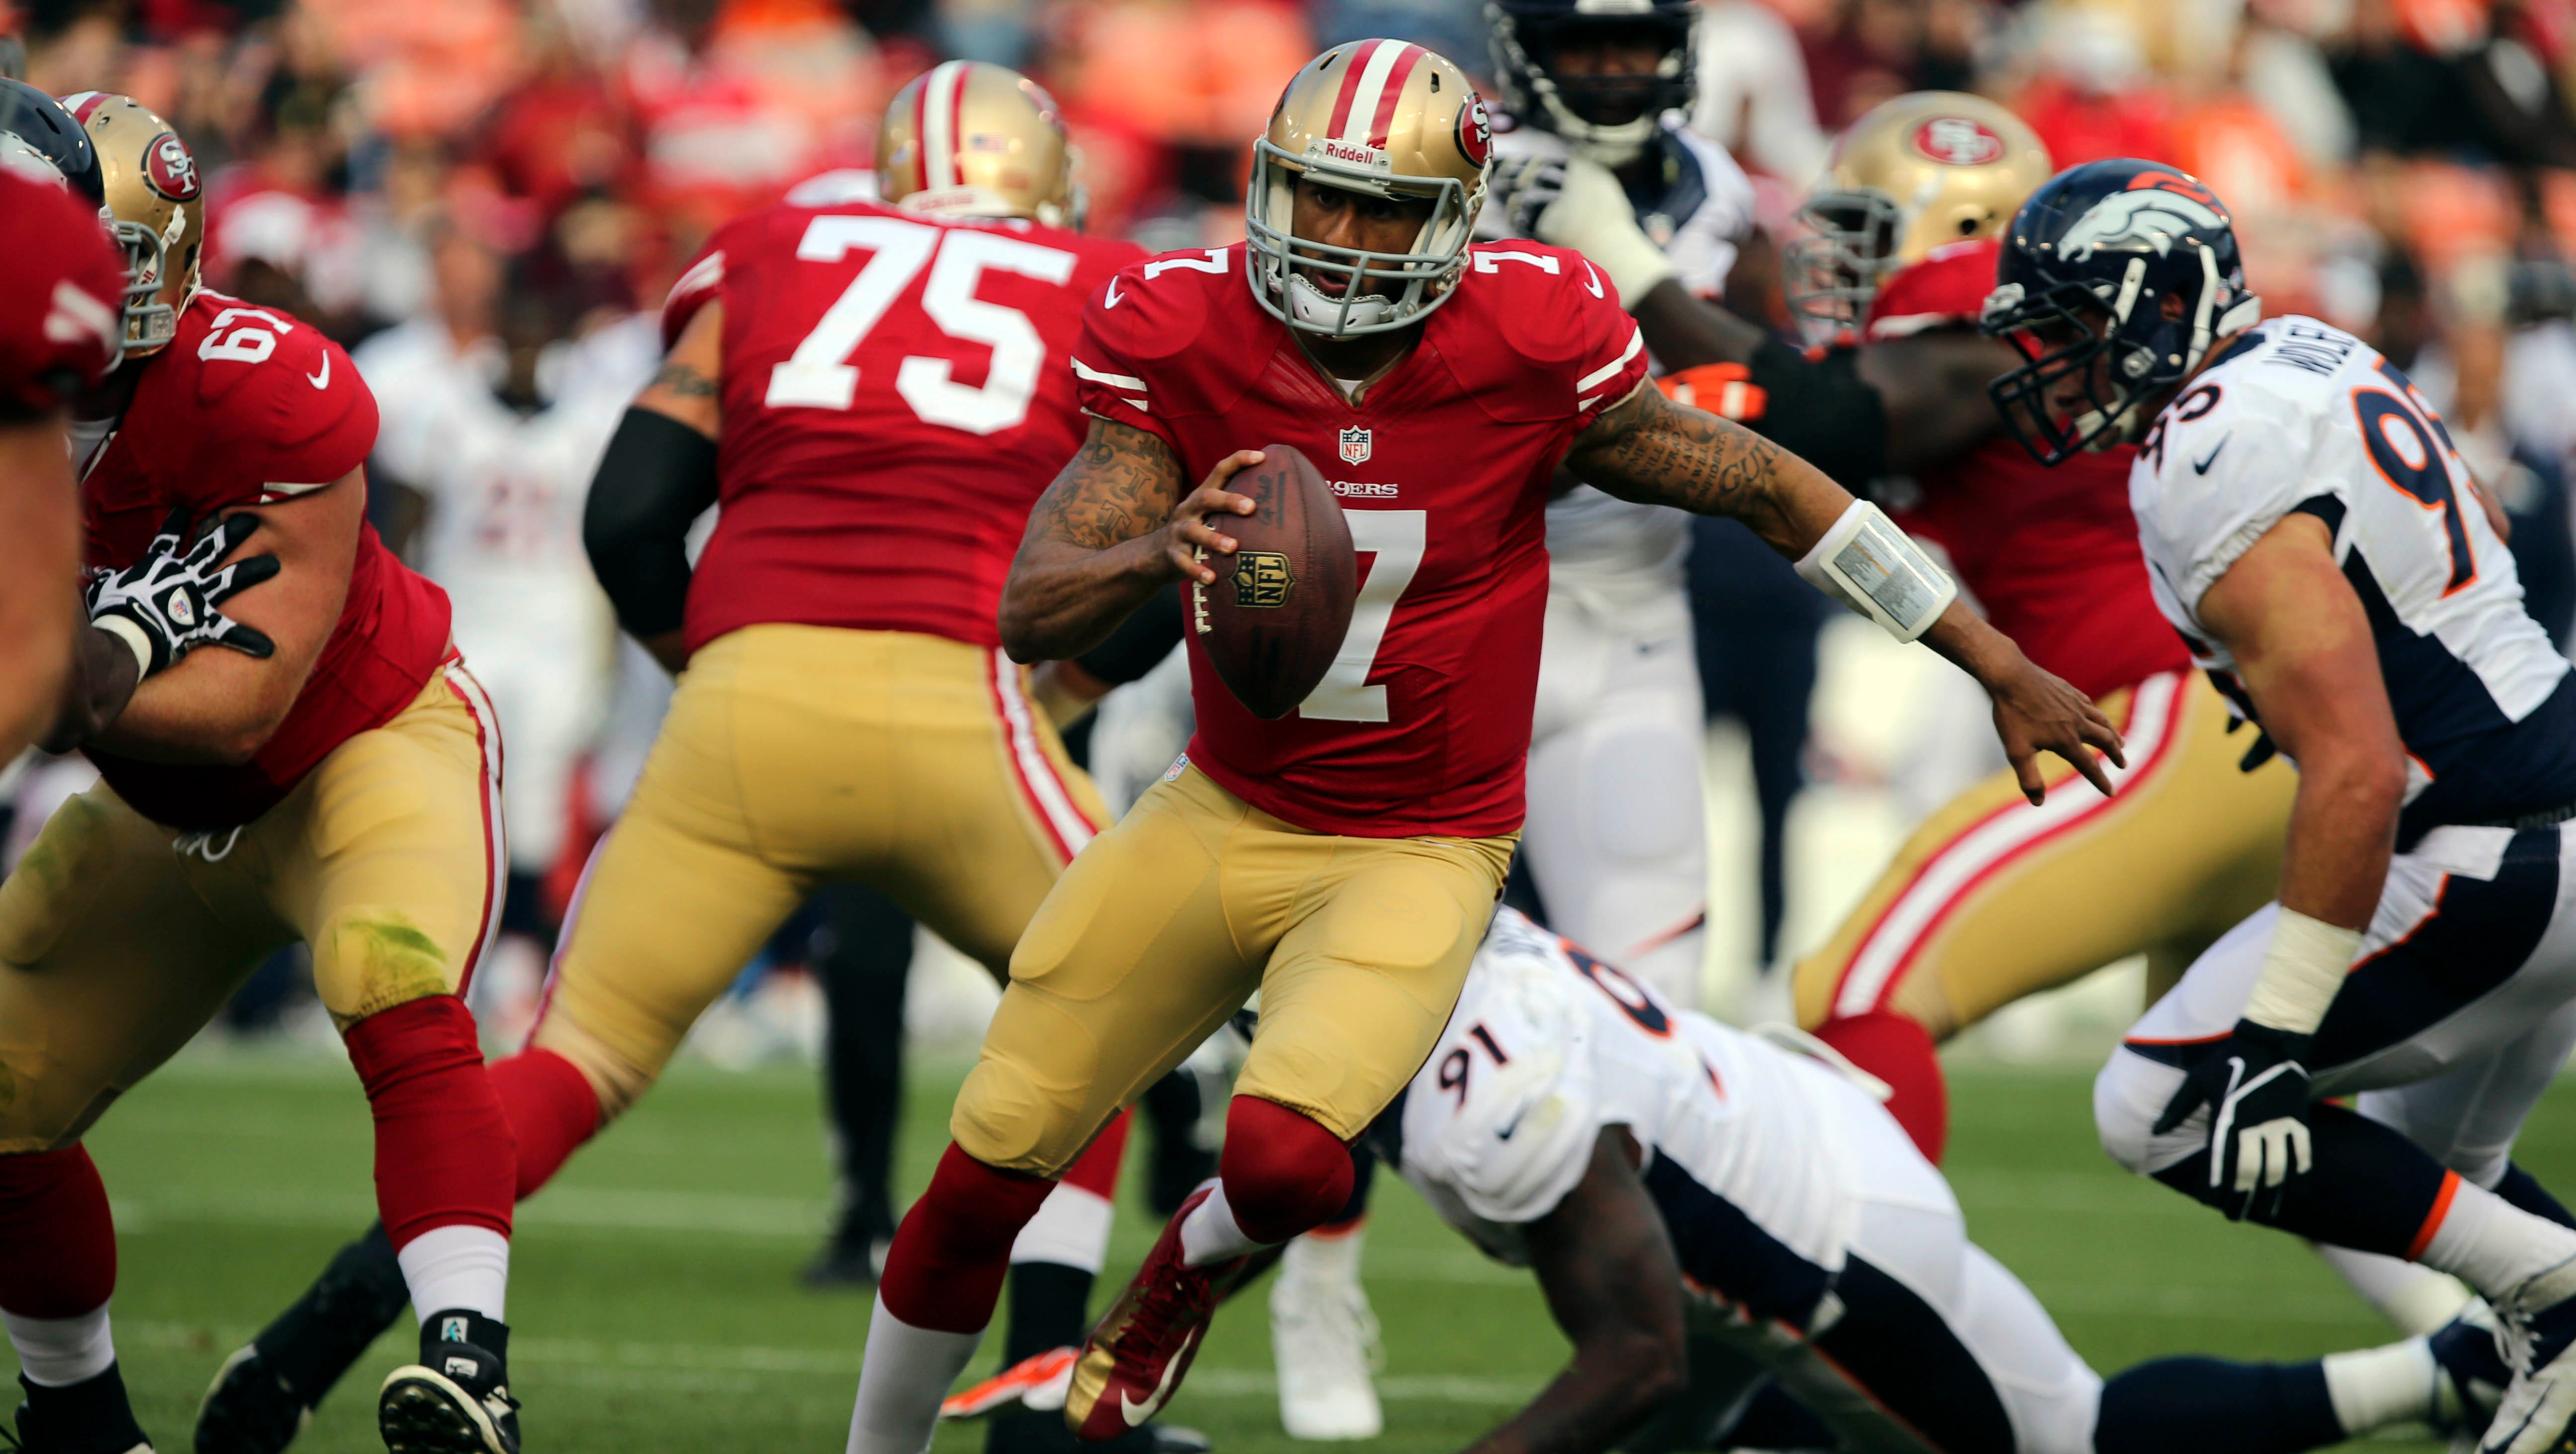 San Francisco 49ers quarterback Colin Kaepernick (7) runs against the Denver Broncos at Candlestick Park.